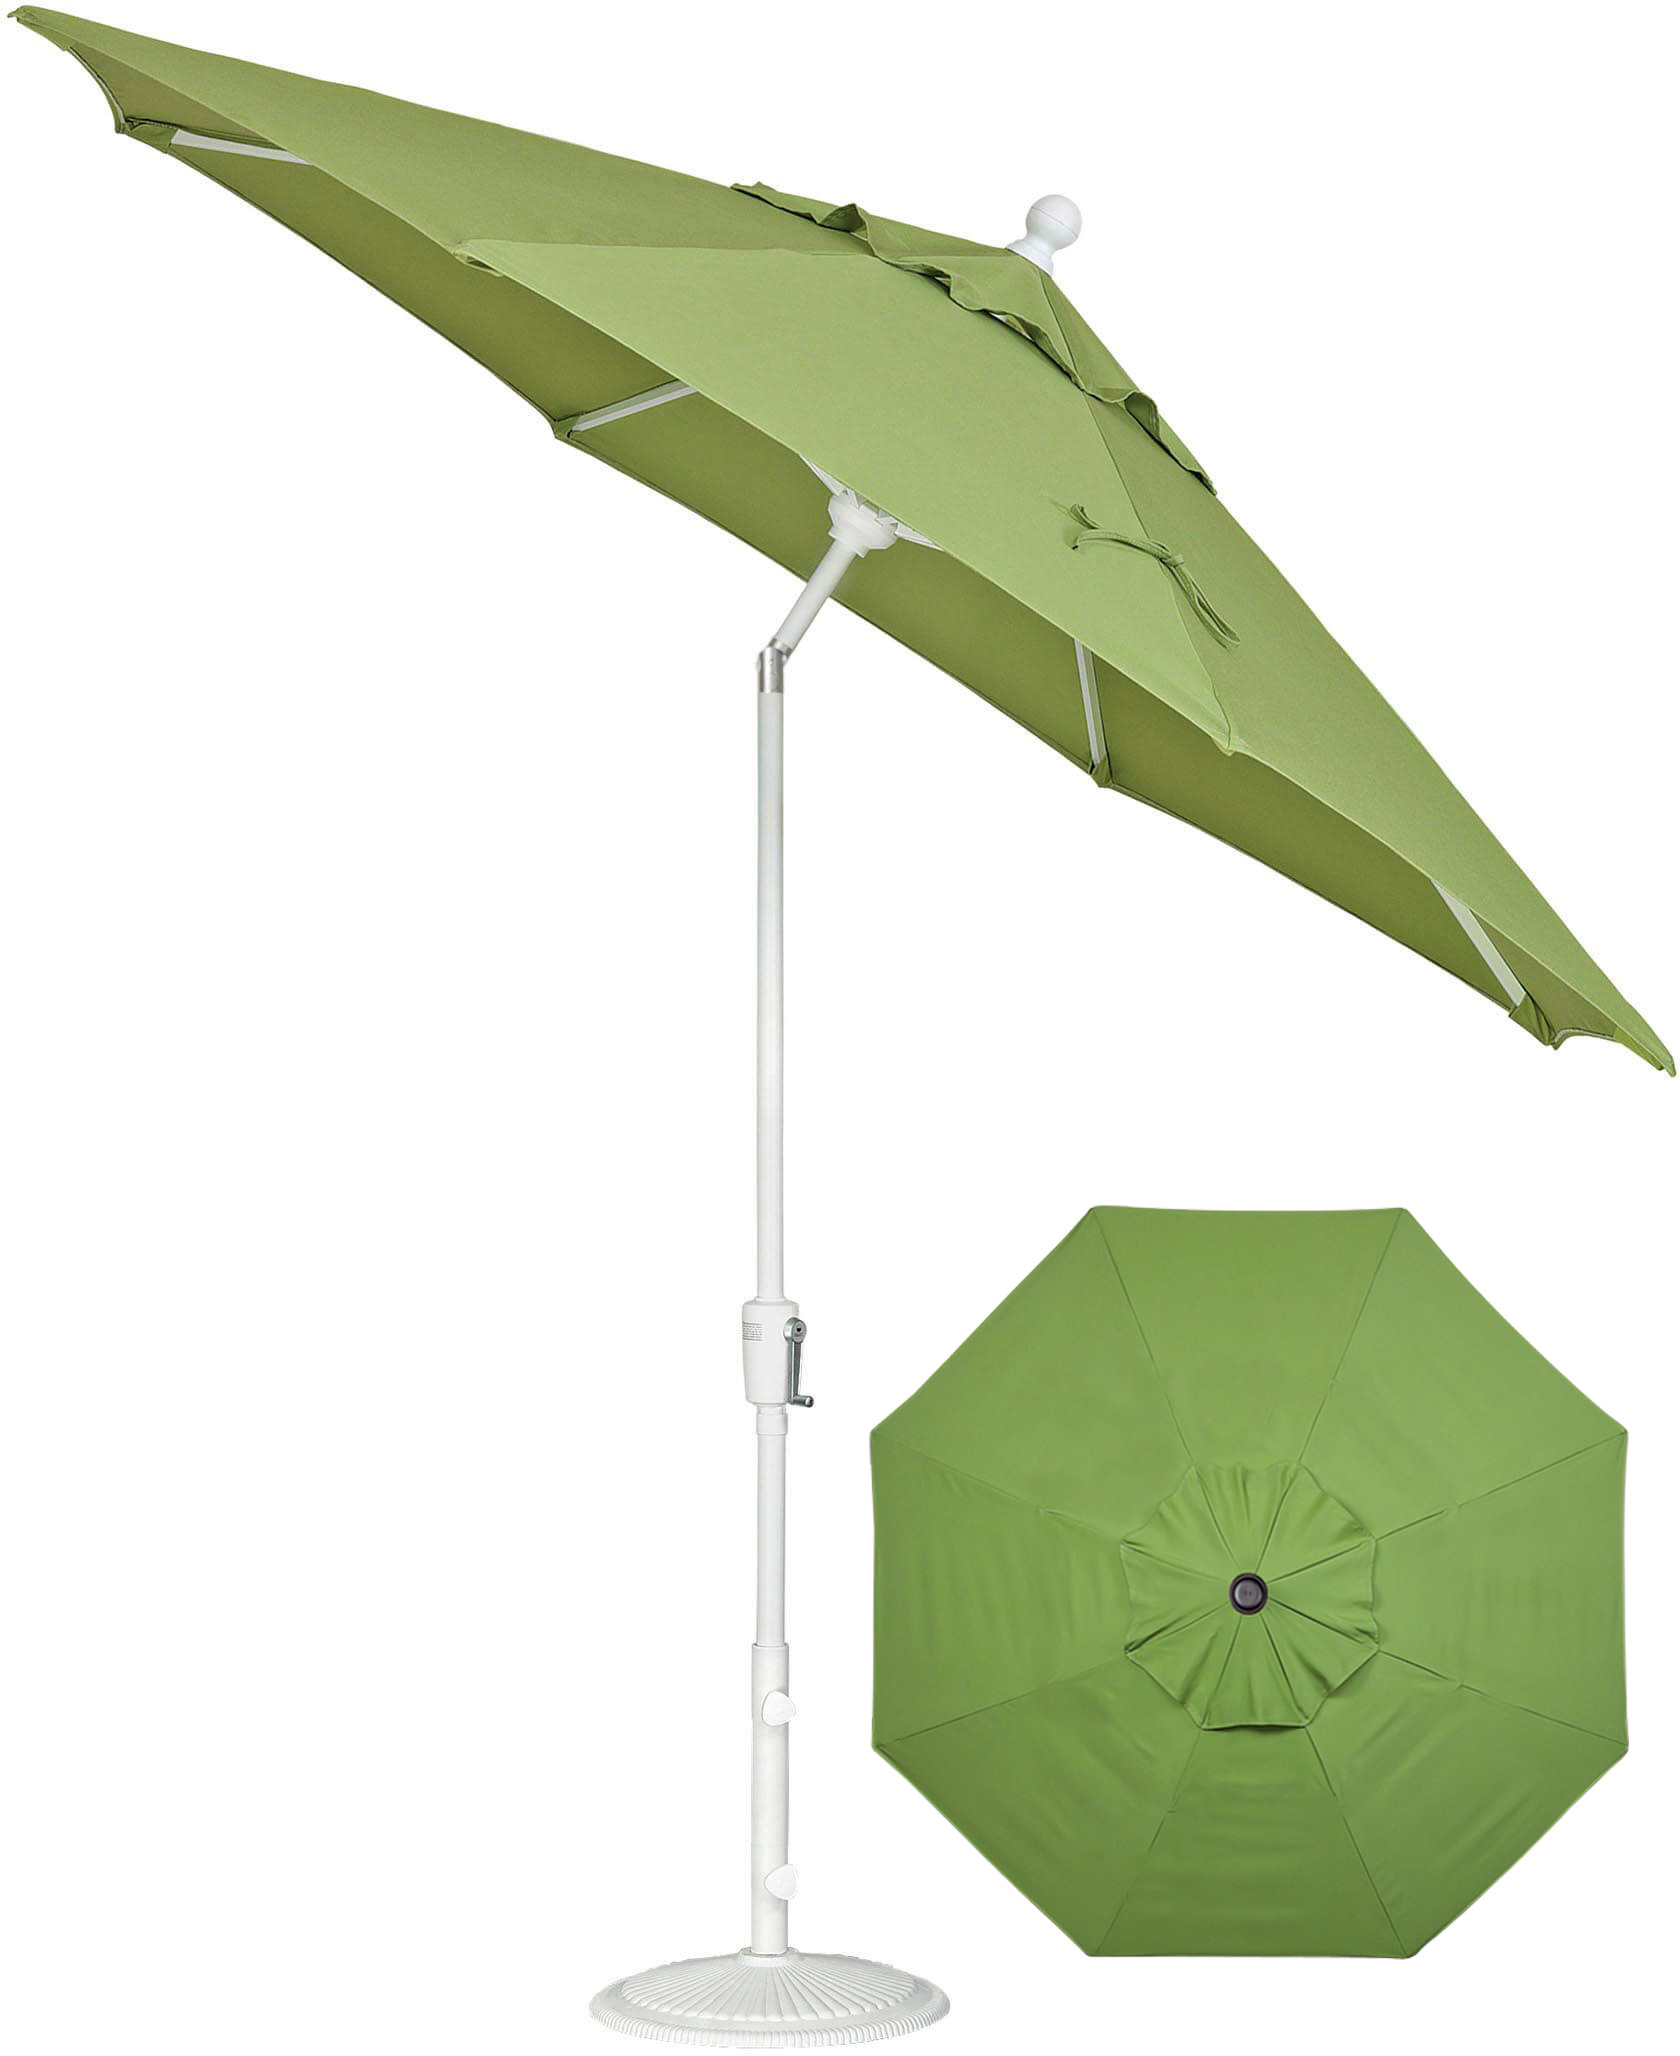 Offset Patio Umbrella with Base | Garden Treasures Offset Umbrella | Lowes Outdoor Umbrella